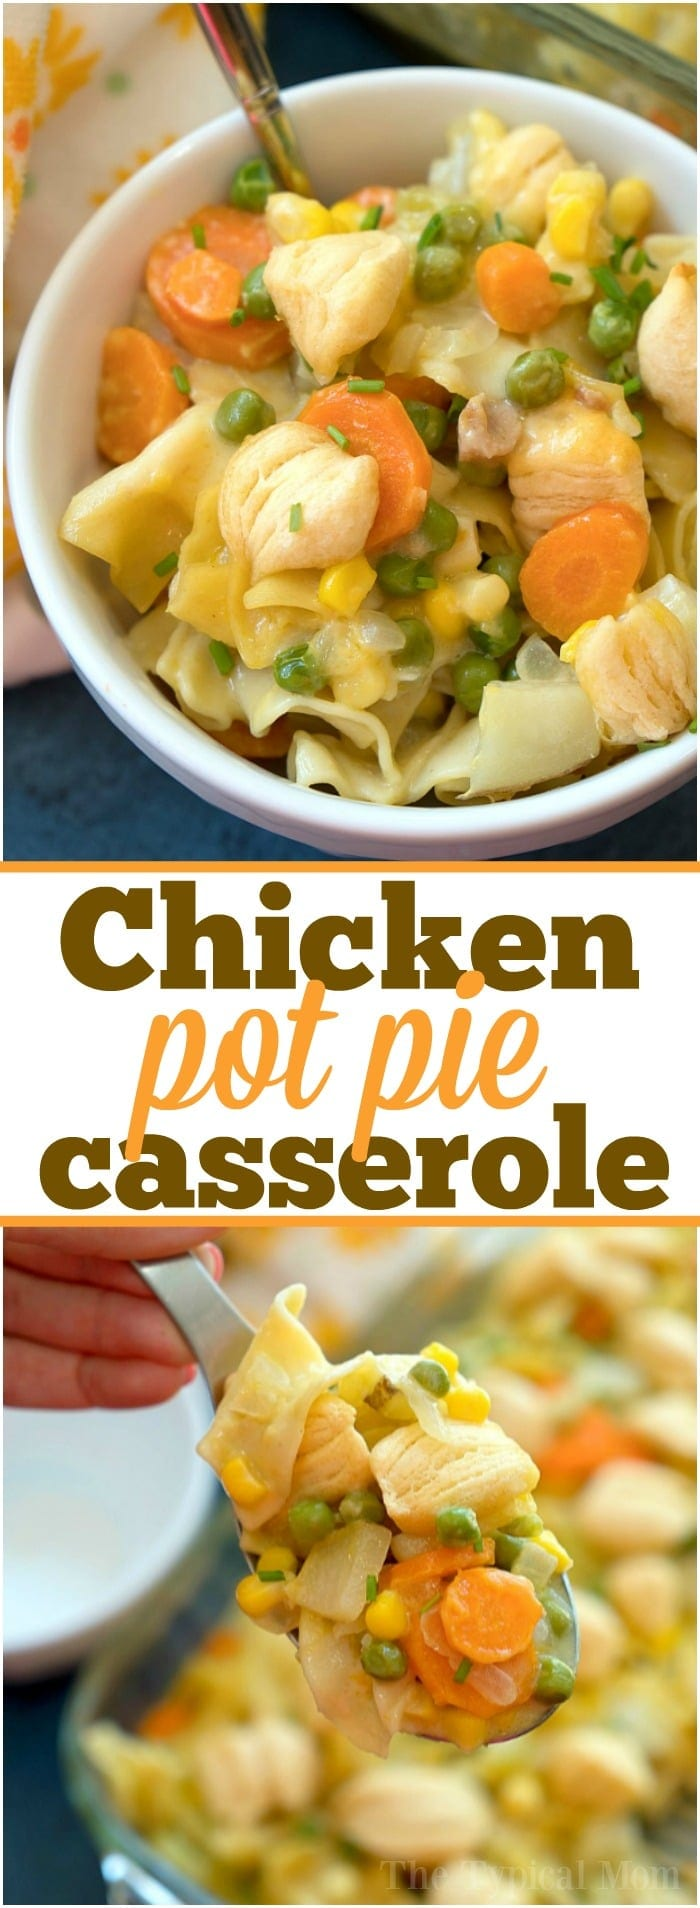 Easy chicken pot pie casserole my whole family loves! Total comfort food made casserole style loaded with chicken and vegetables with a retro style crust.